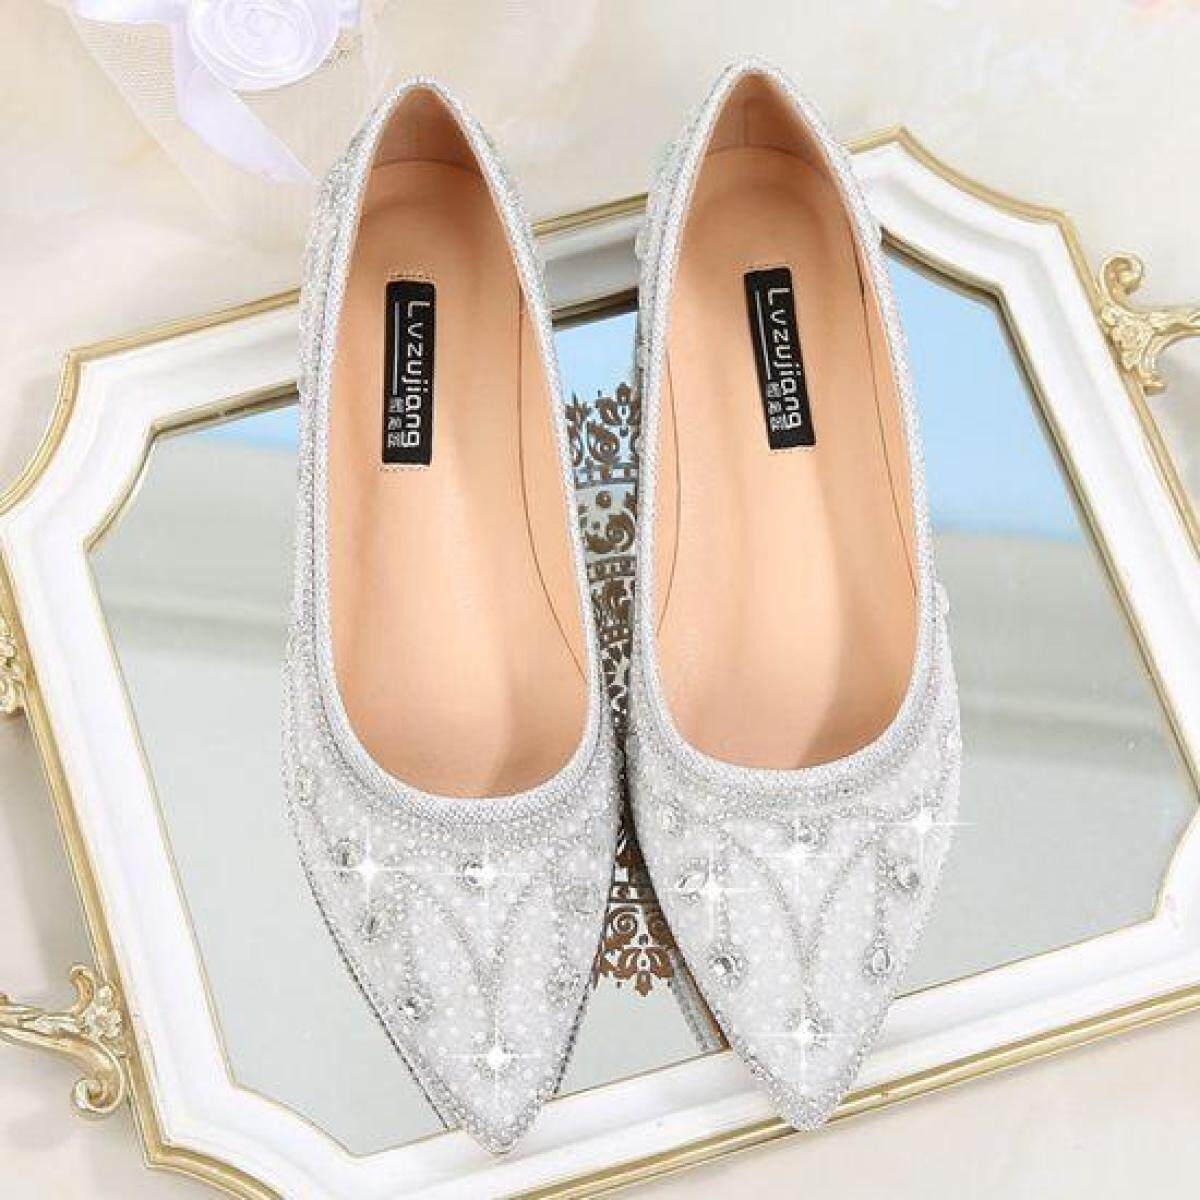 737c73fa0afad Wedding Shoes women 2018 New Style Bridal Shoes Flat Pointed Man-made  Diamond Silver-